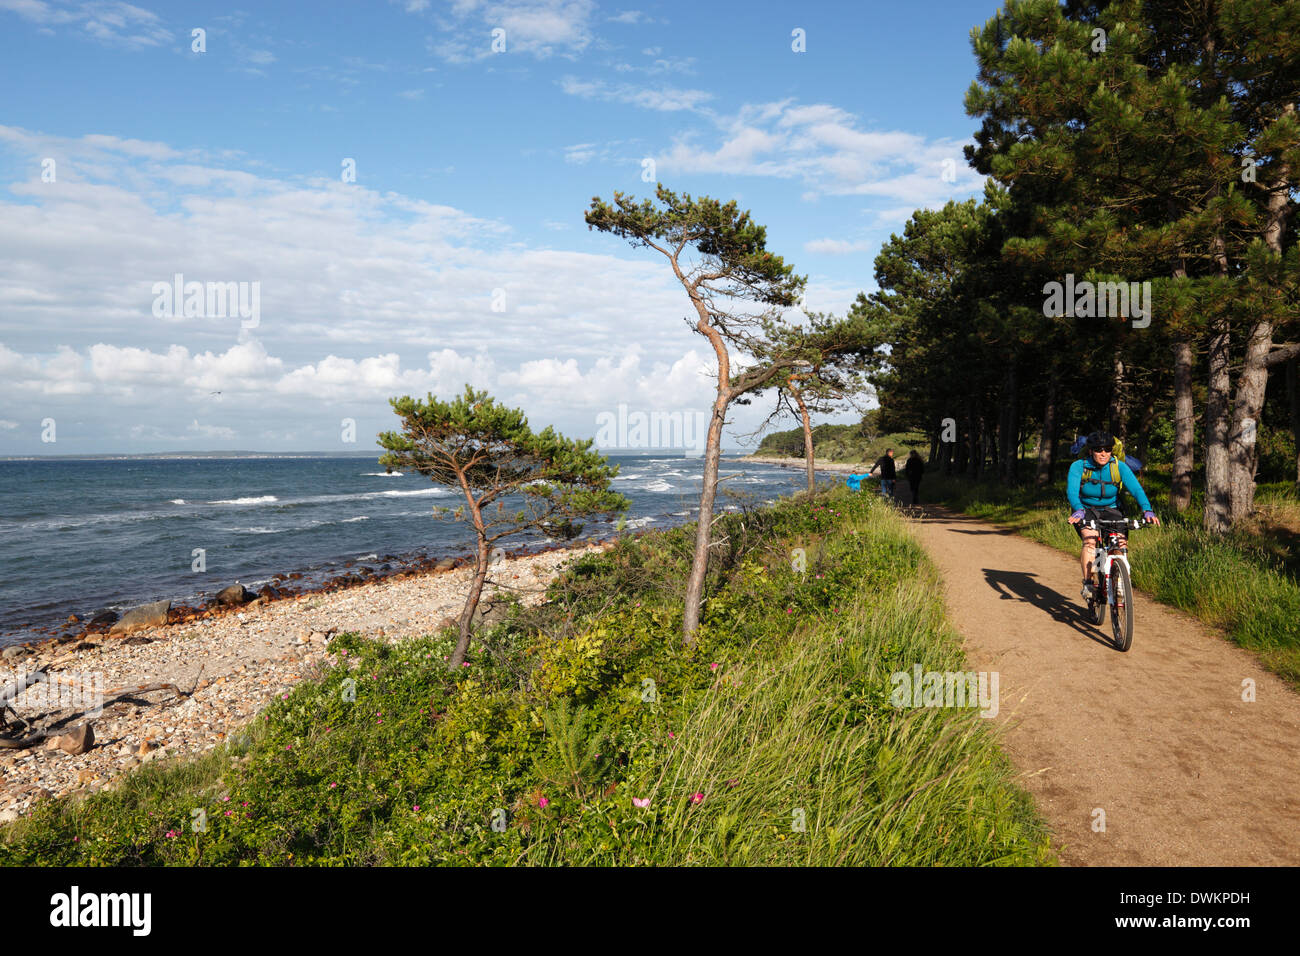 Hornbaek beach, Hornbaek, Zealand, Denmark, Europe Stock Photo